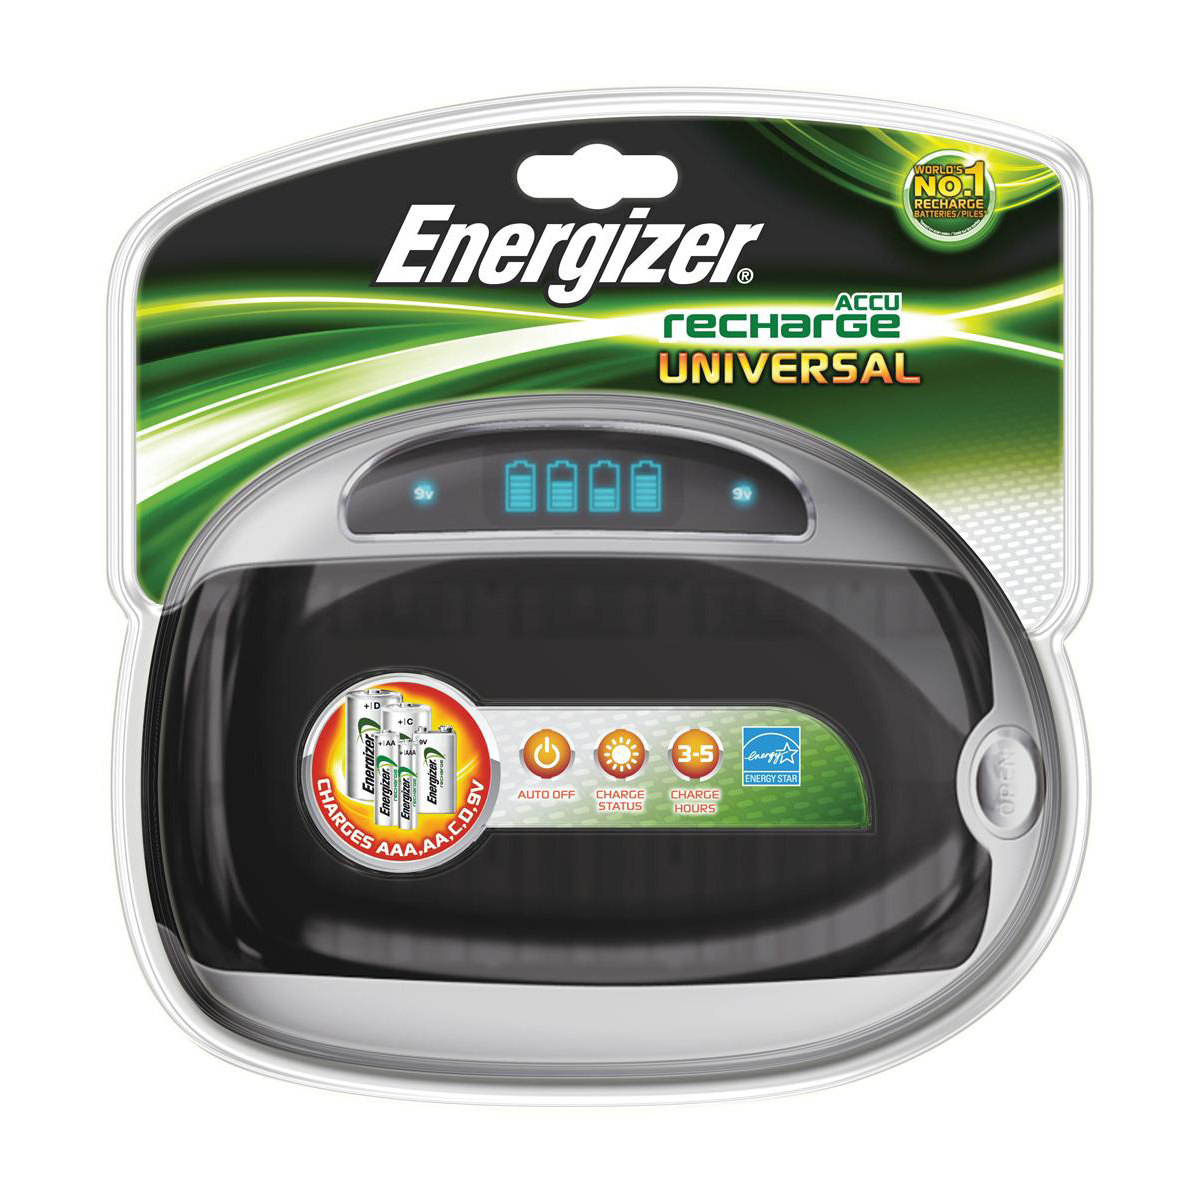 Image for Energizer Universal Battery Charger CHEUF with Smart LED 2-5Hrs Time for AAA AA C D 9V Ref E301335700